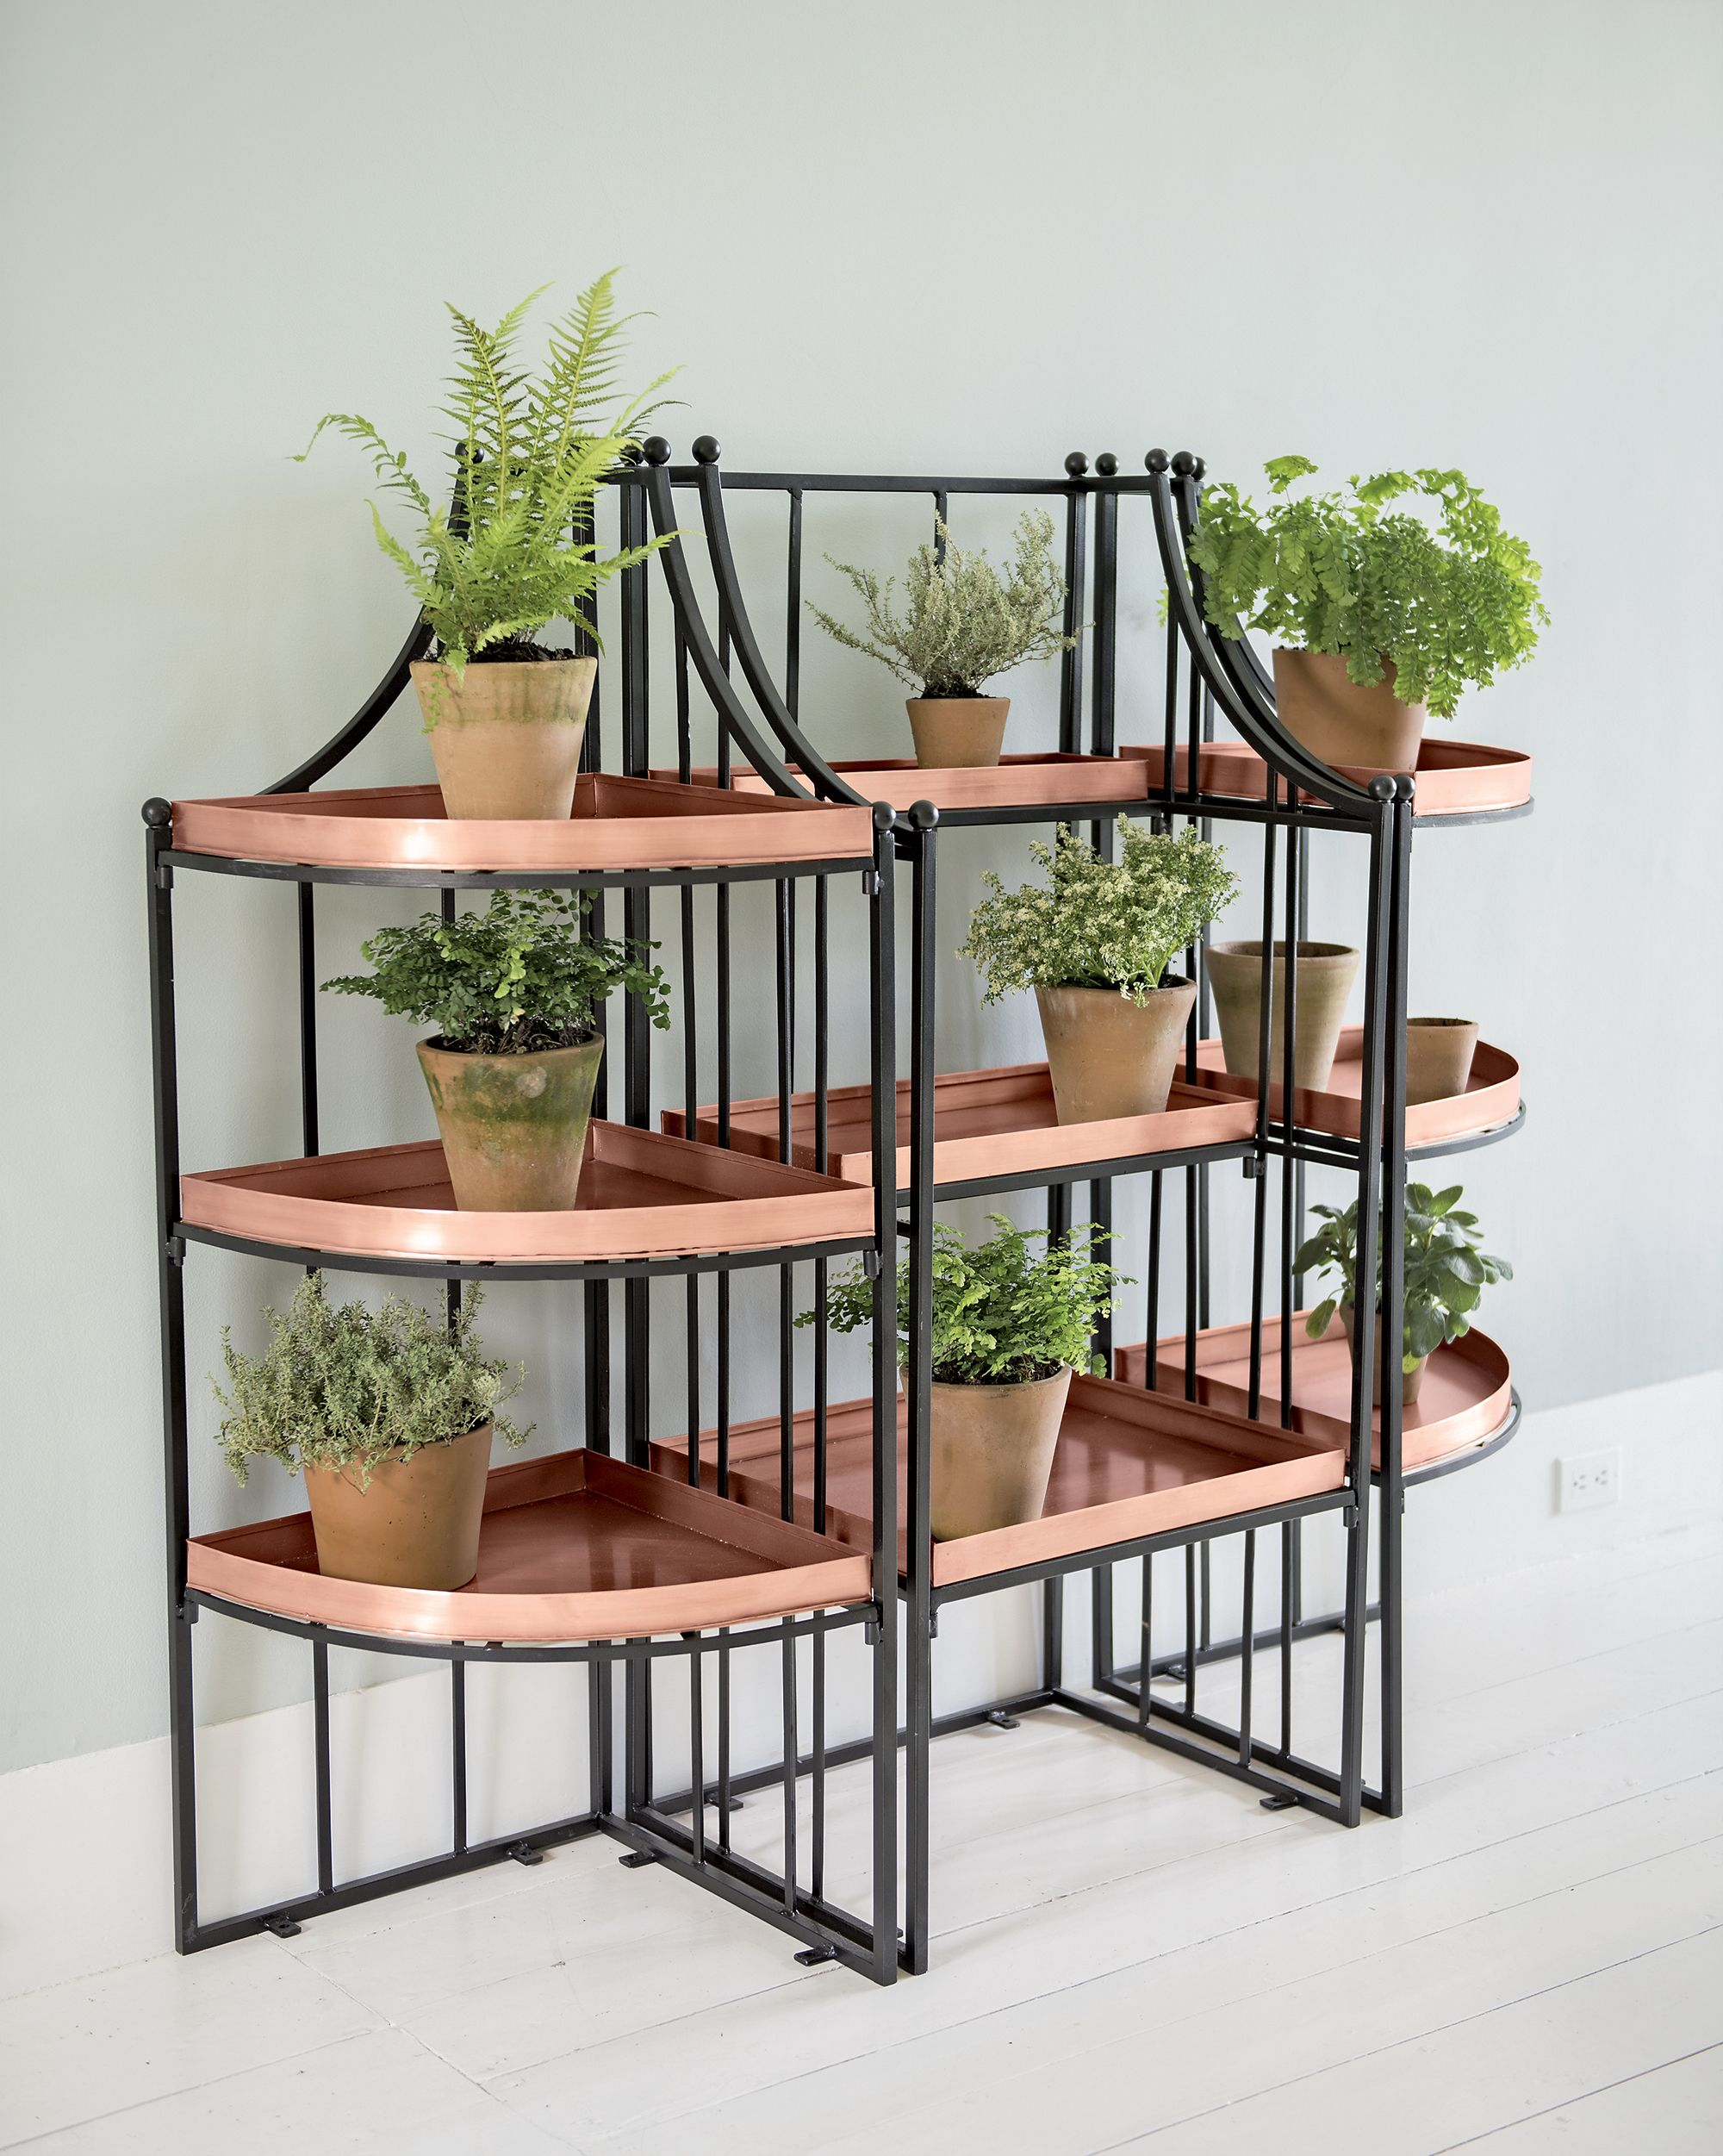 a7a0c3d1fbbe Essex Plant Stand Set with Trays | Products | Corner plant, Plants ...